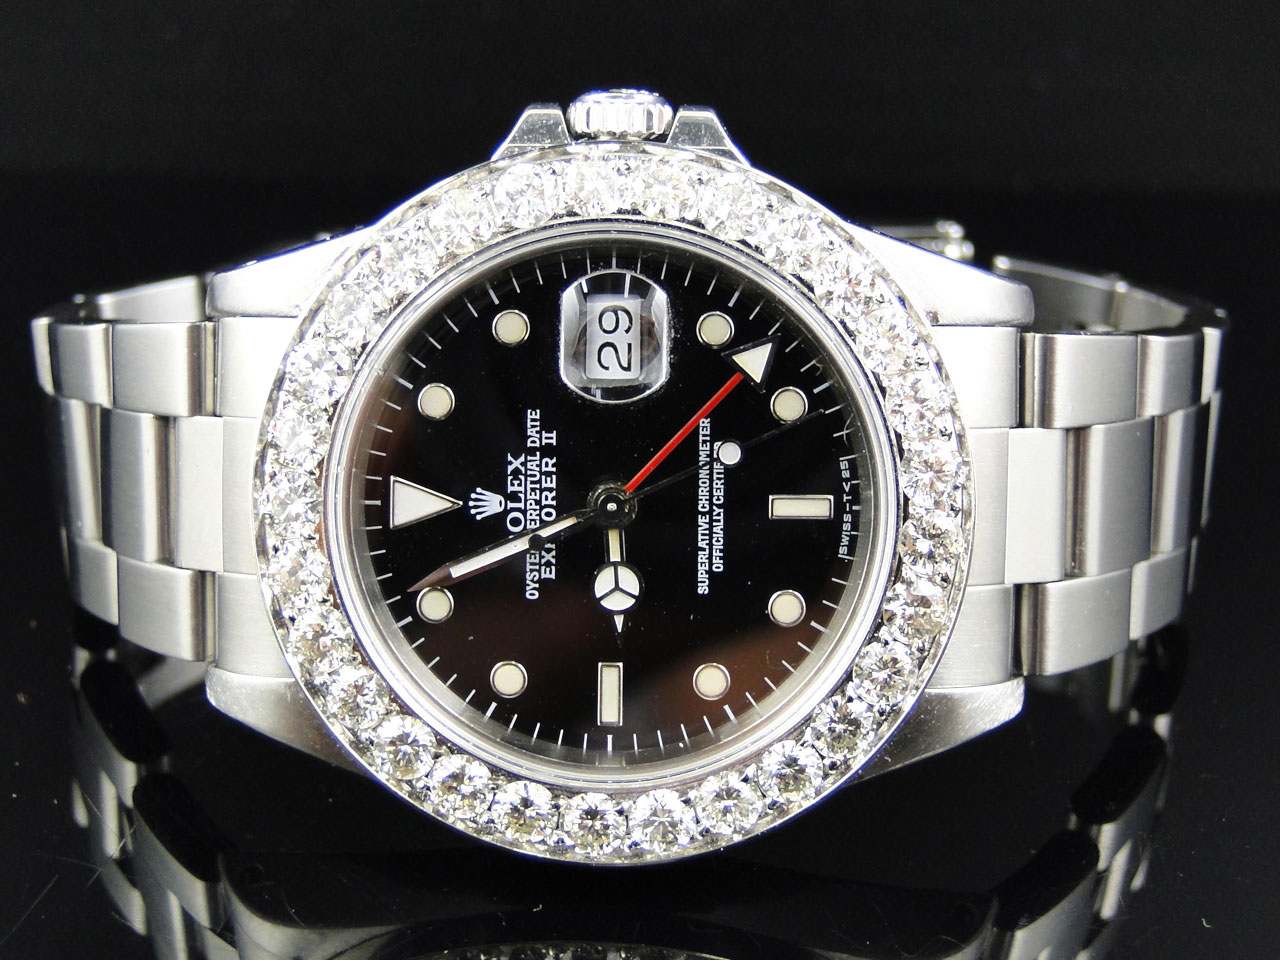 Rolex Explorer Details About Mens 40mm Stainless Steel Rolex Explorer Ii Black Dial Watch 6 Ct Diamond Bezel